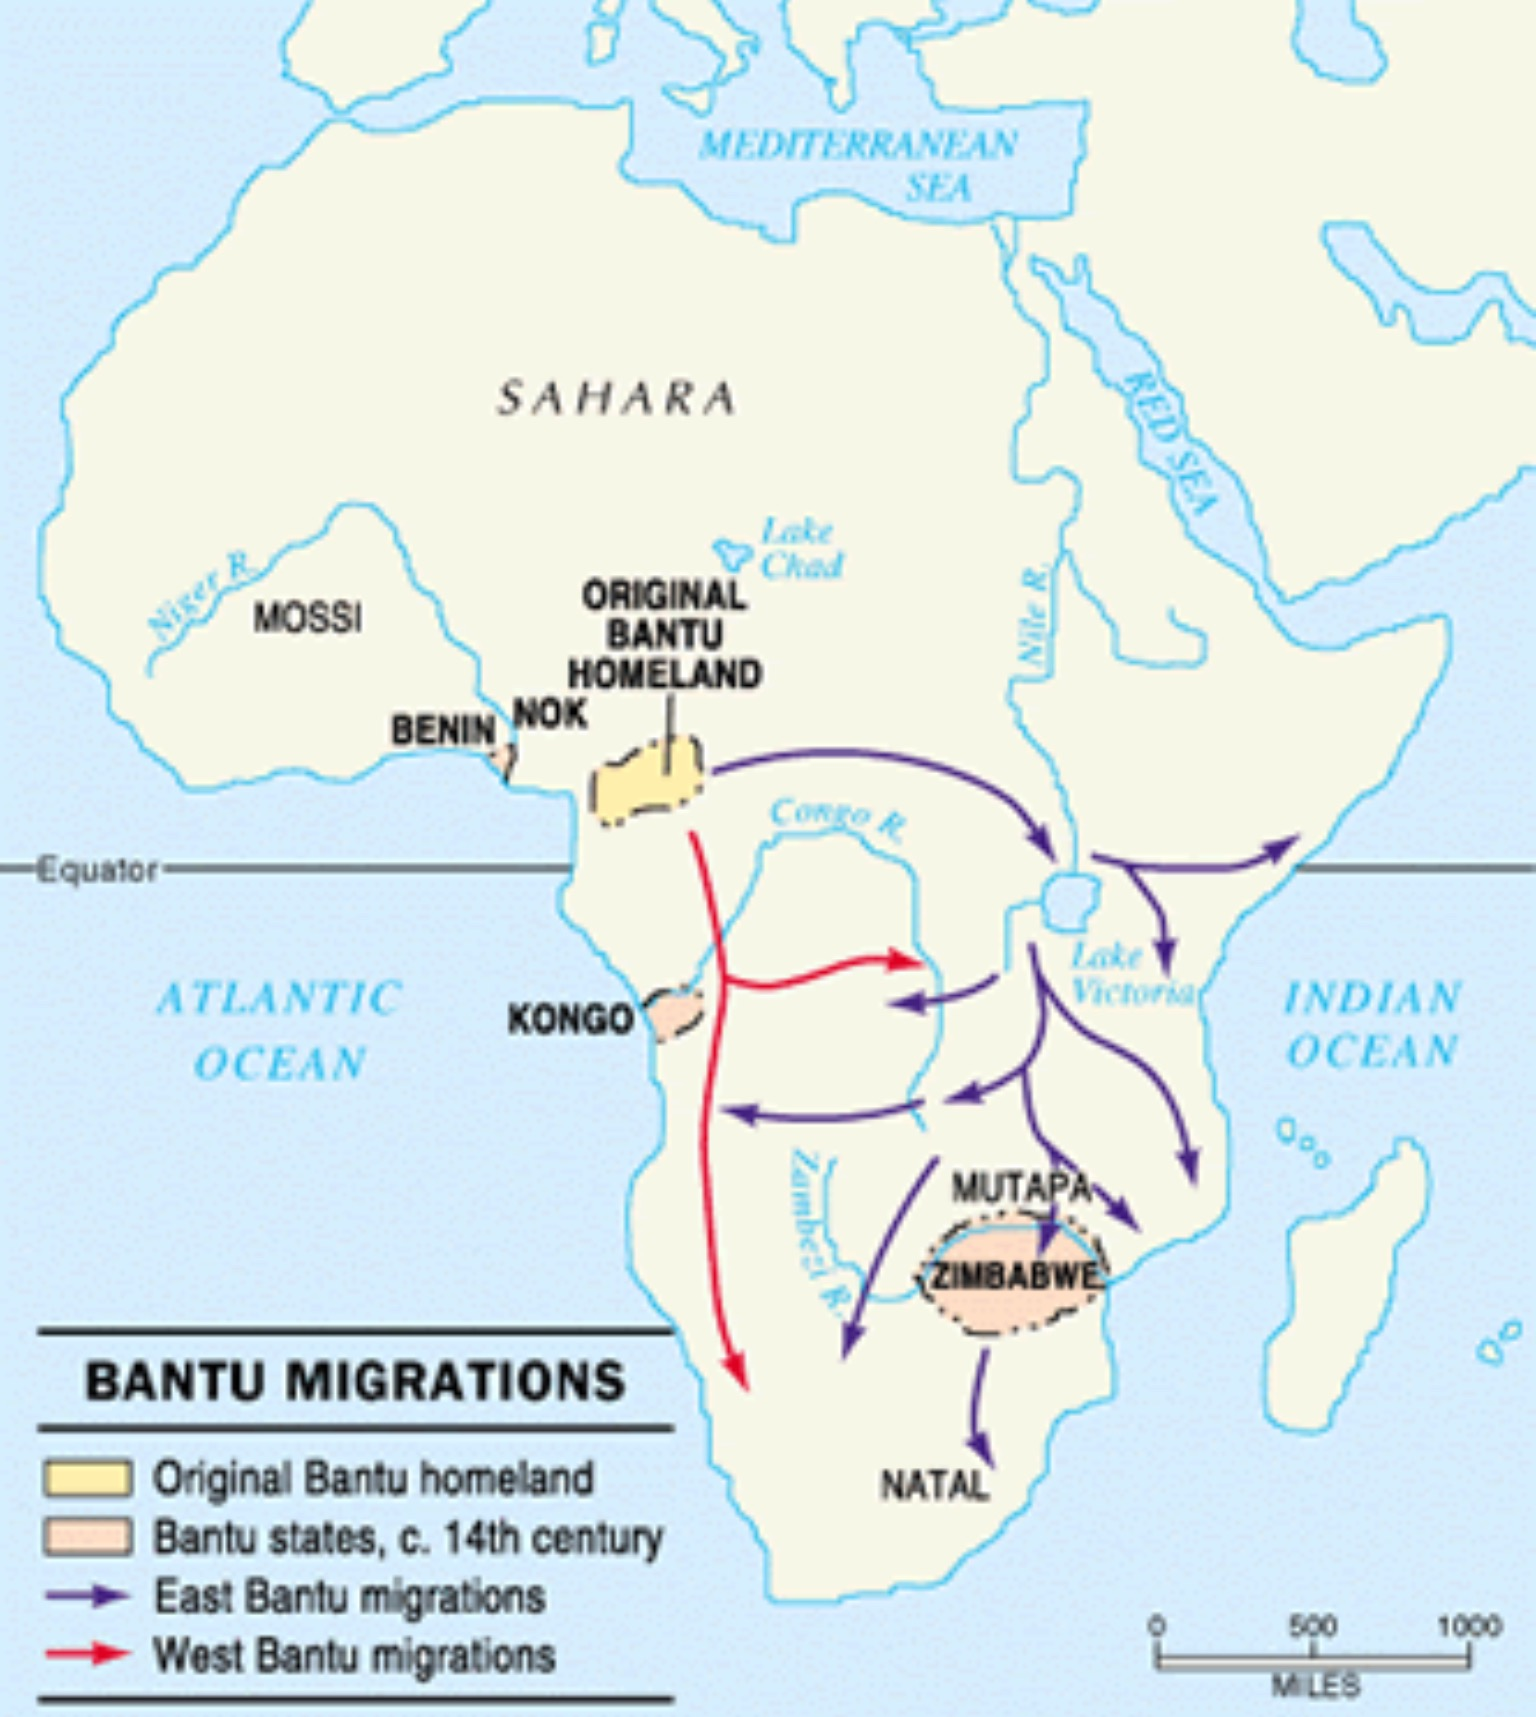 bantu migrations The bantu migration is the movement of the bantu people, originally from congo, into other countries of eastern and southern africa such as tanzania and kenya.